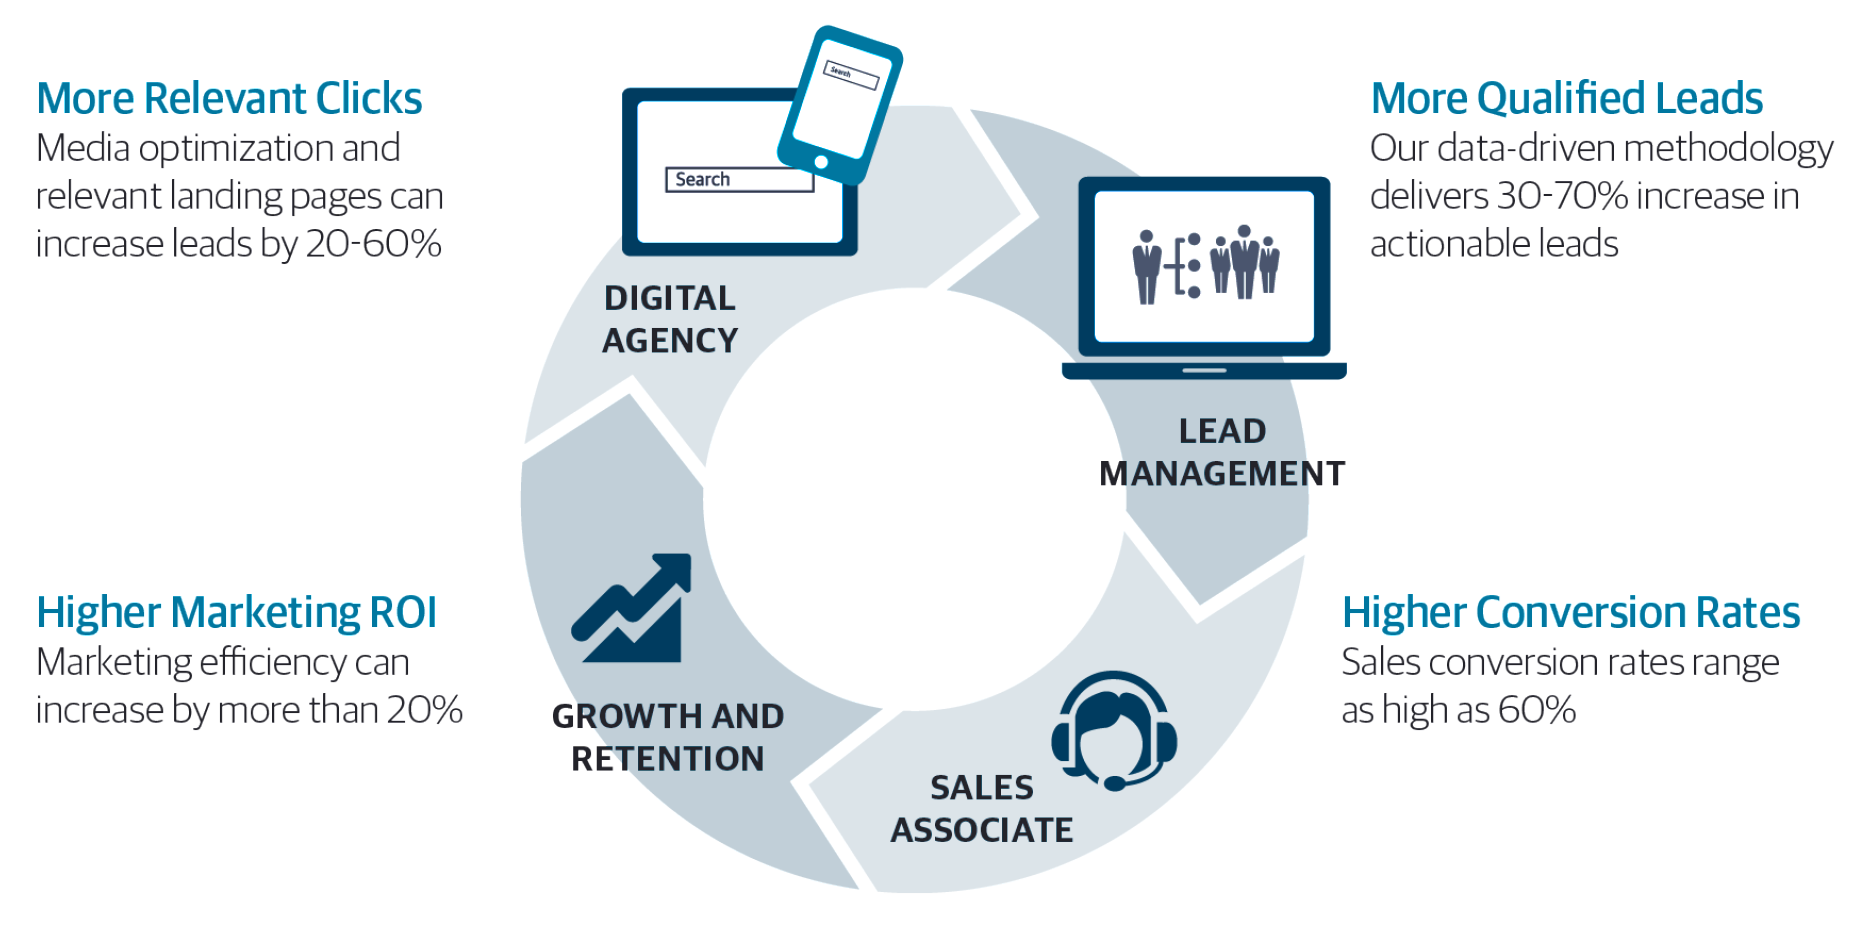 TeleTech's Revana AQ360 is a sales and marketing platform designed to improve customer quality, experience, and conversion.